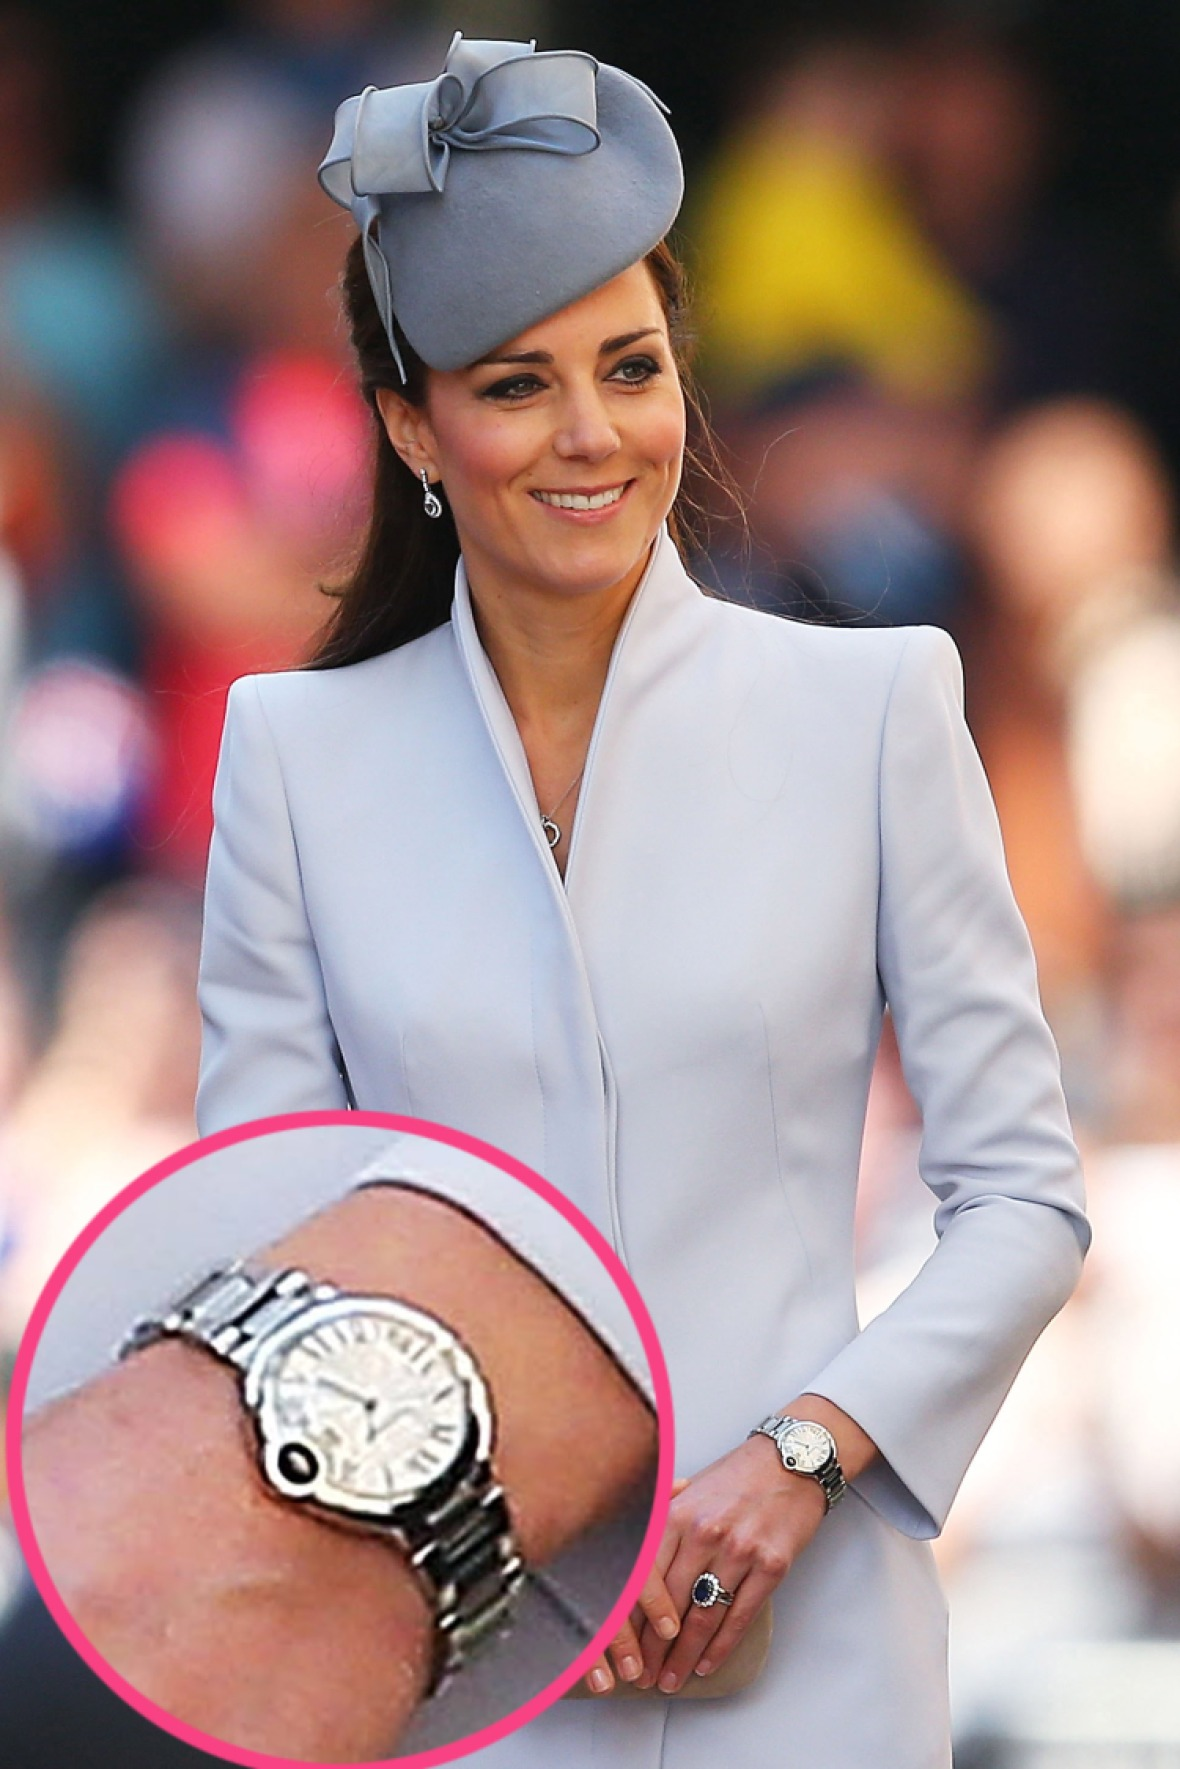 kate middleton watch getty images